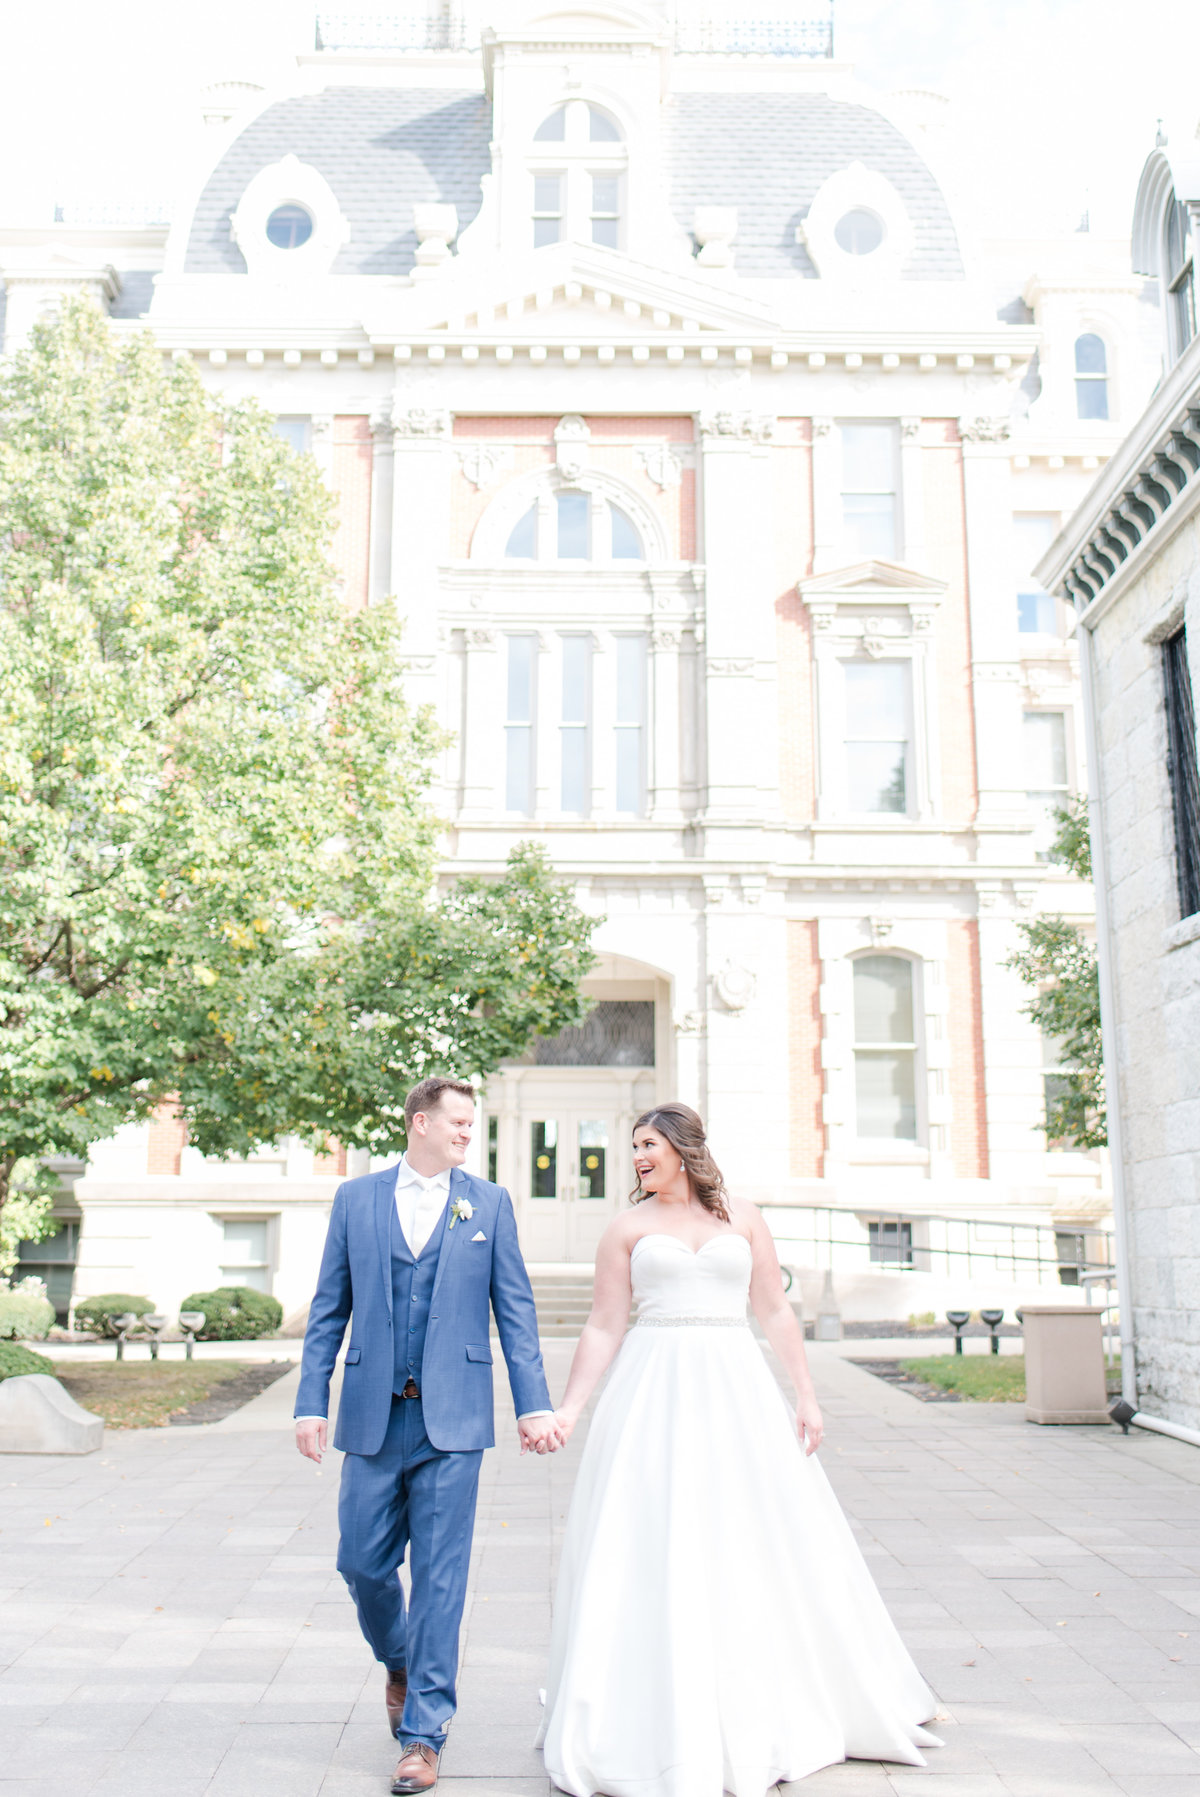 Newlywed Portraits Cait Potter Creative LLC Milltop Potters Bridge Noblesville Square Courthouse Wedding-33